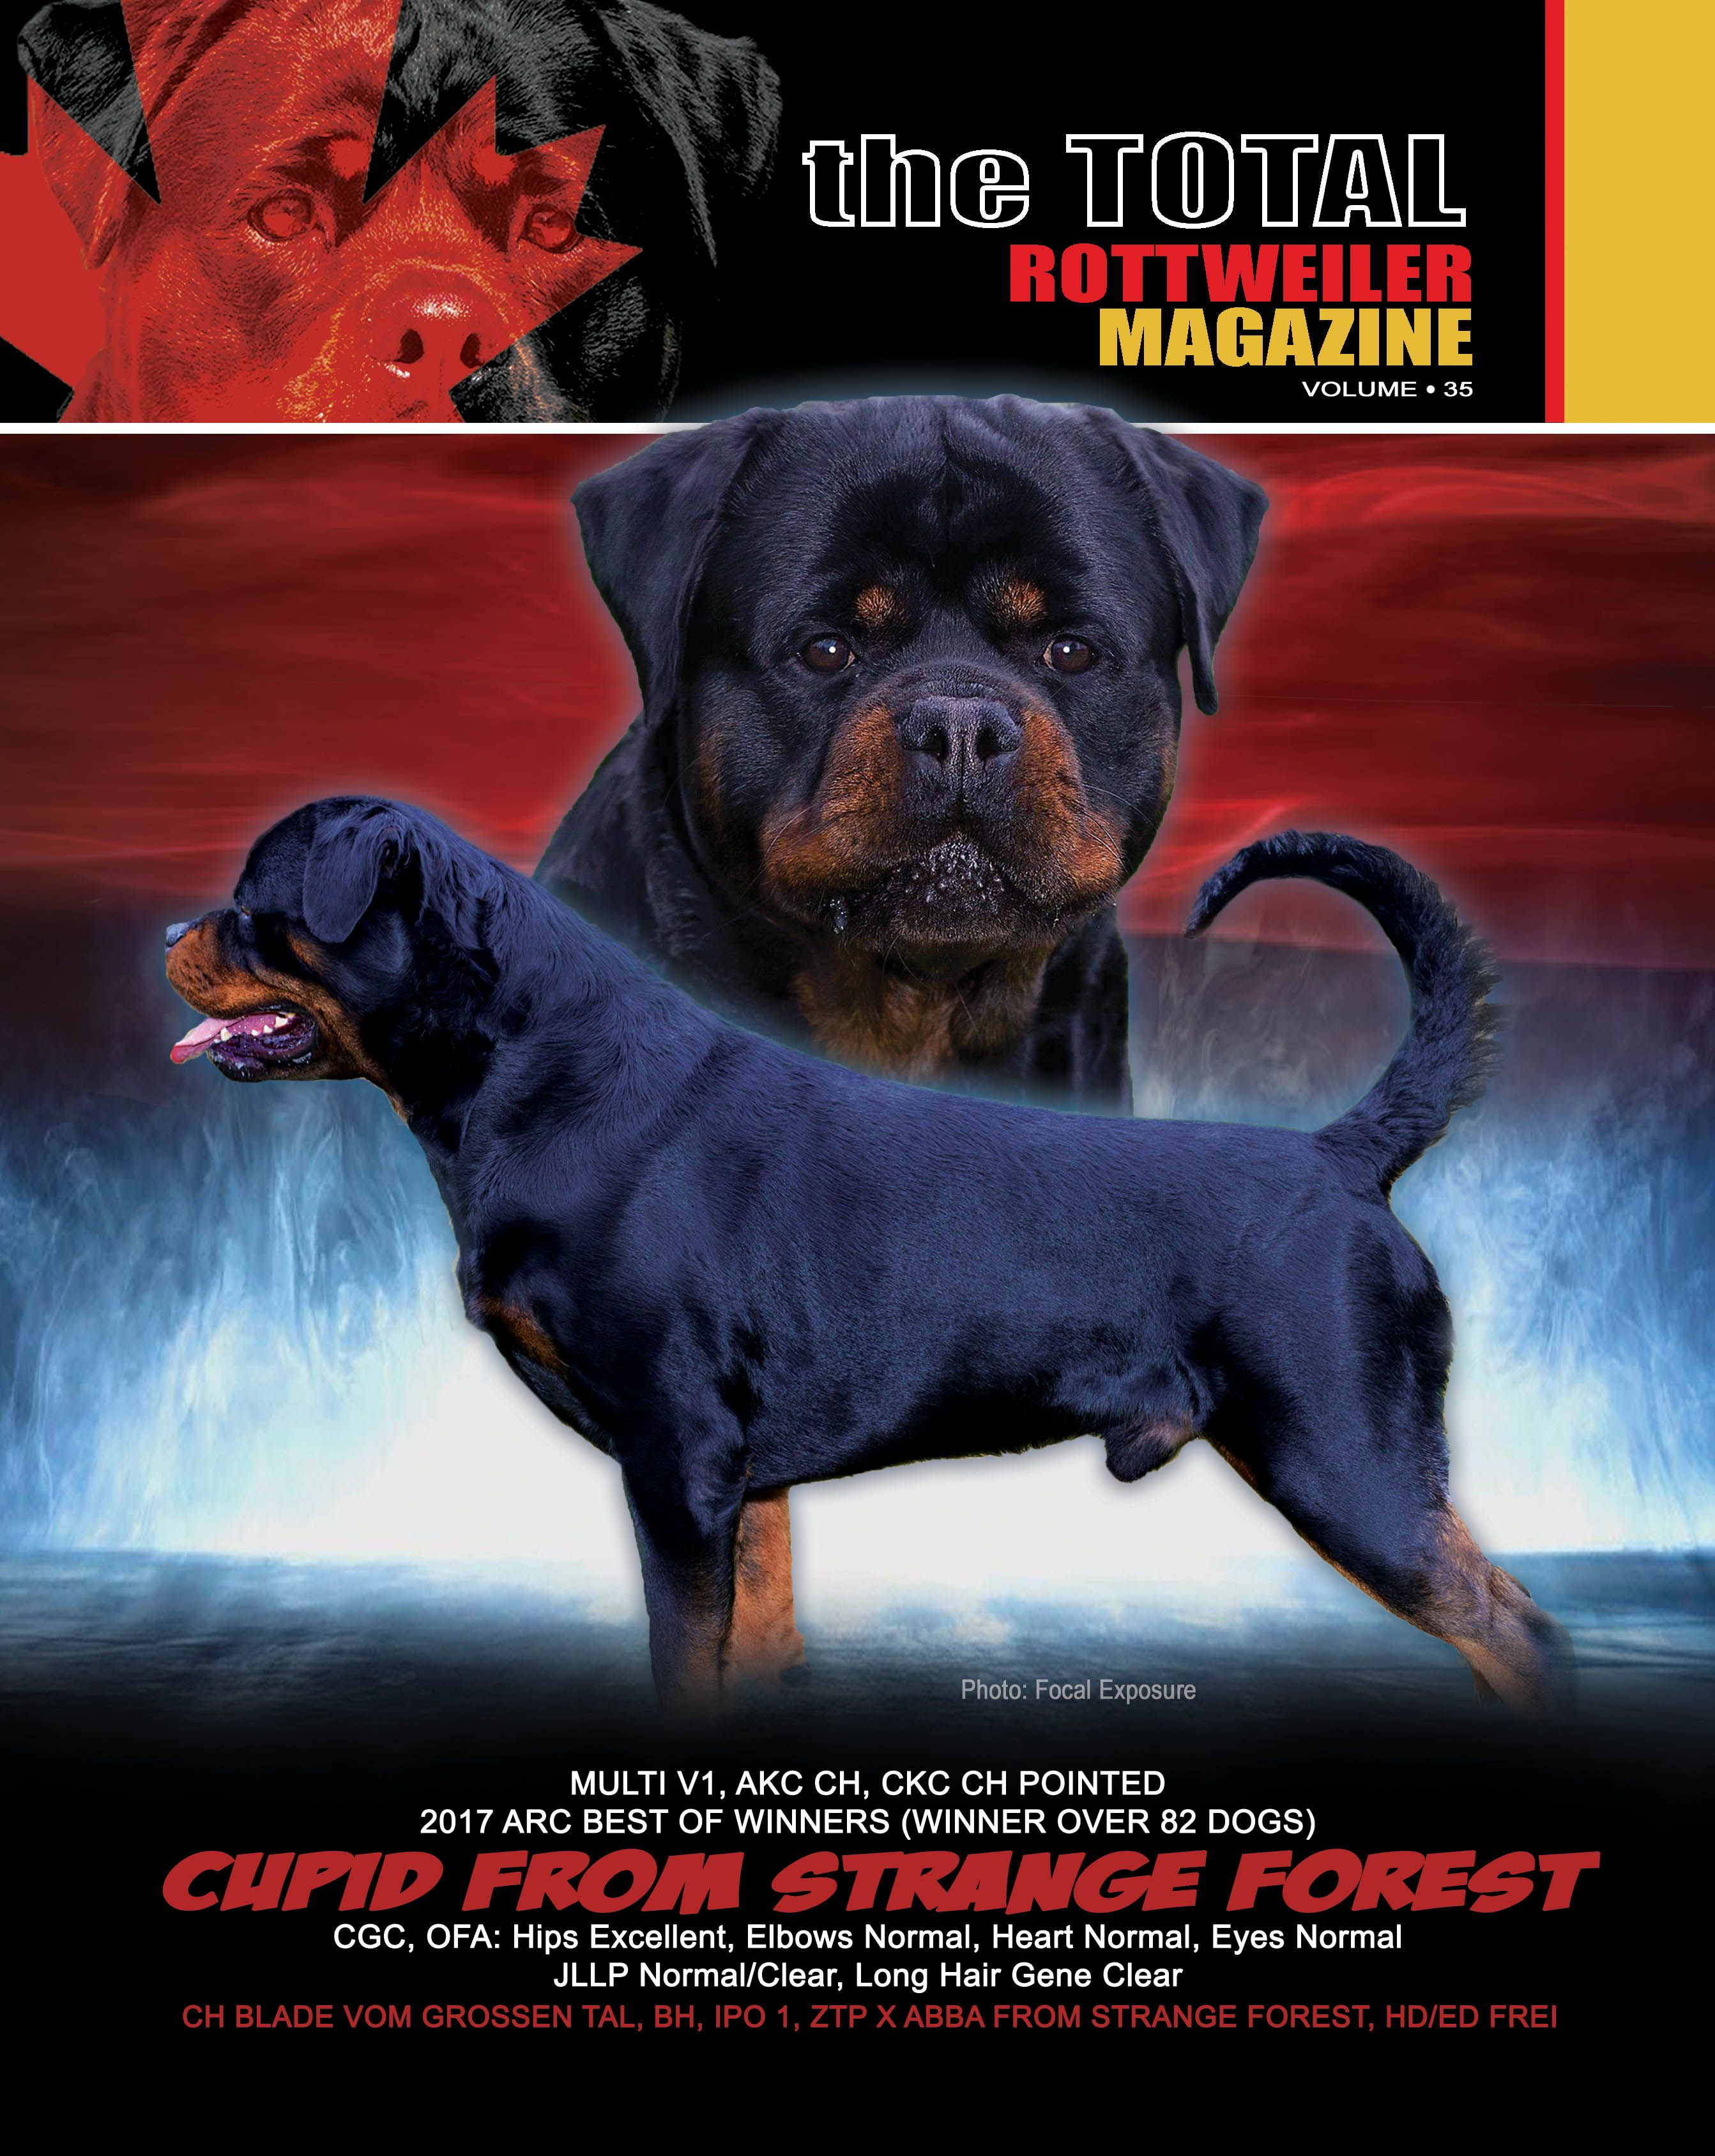 Rottweiler Image By Total Rottweiler Magazine Ltd On Total